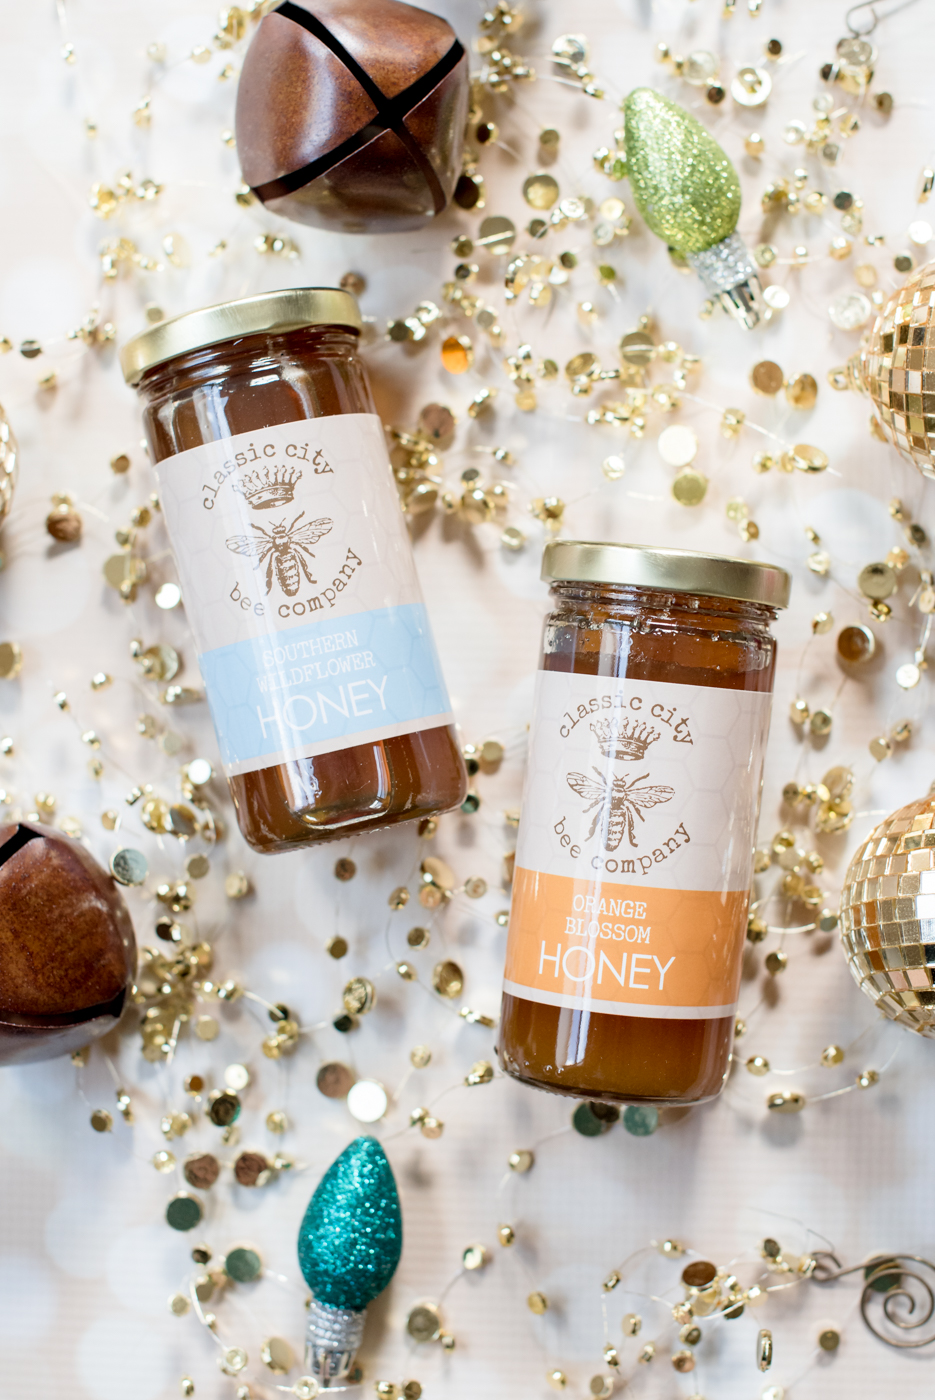 Classic City Bee Company | Shop Local Holiday Gift Guide | Athens, GA | @missmollymoon